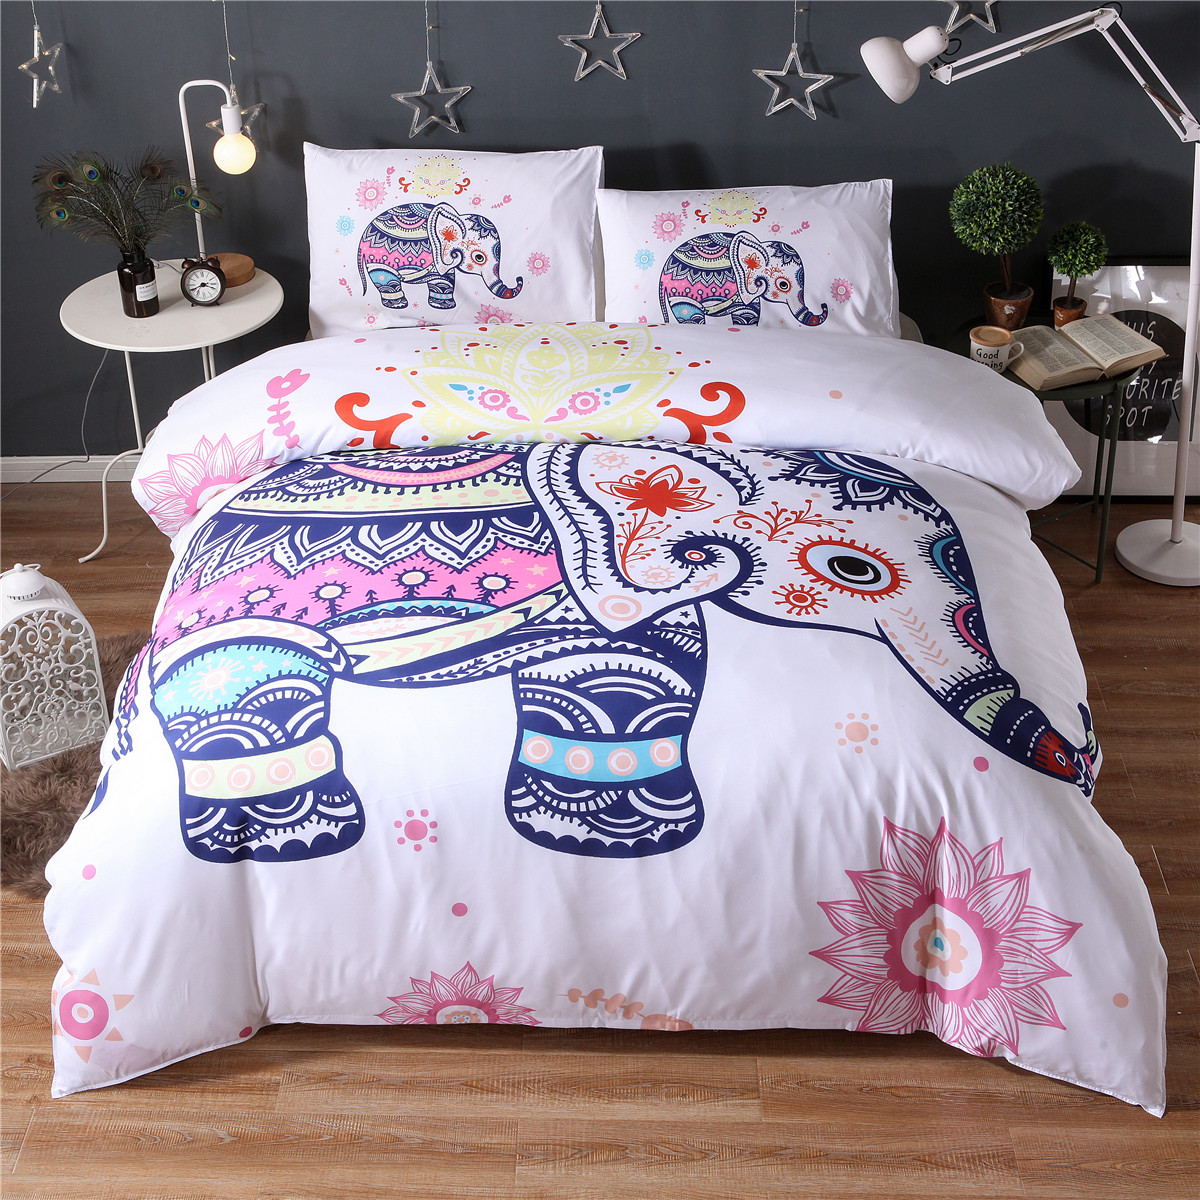 3D Animal Elephant Bedding Set Bohemian Colorful Printed Duvet Cover Double Queen King Size Bed Linen Bedding Sets in Bedding Sets from Home Garden